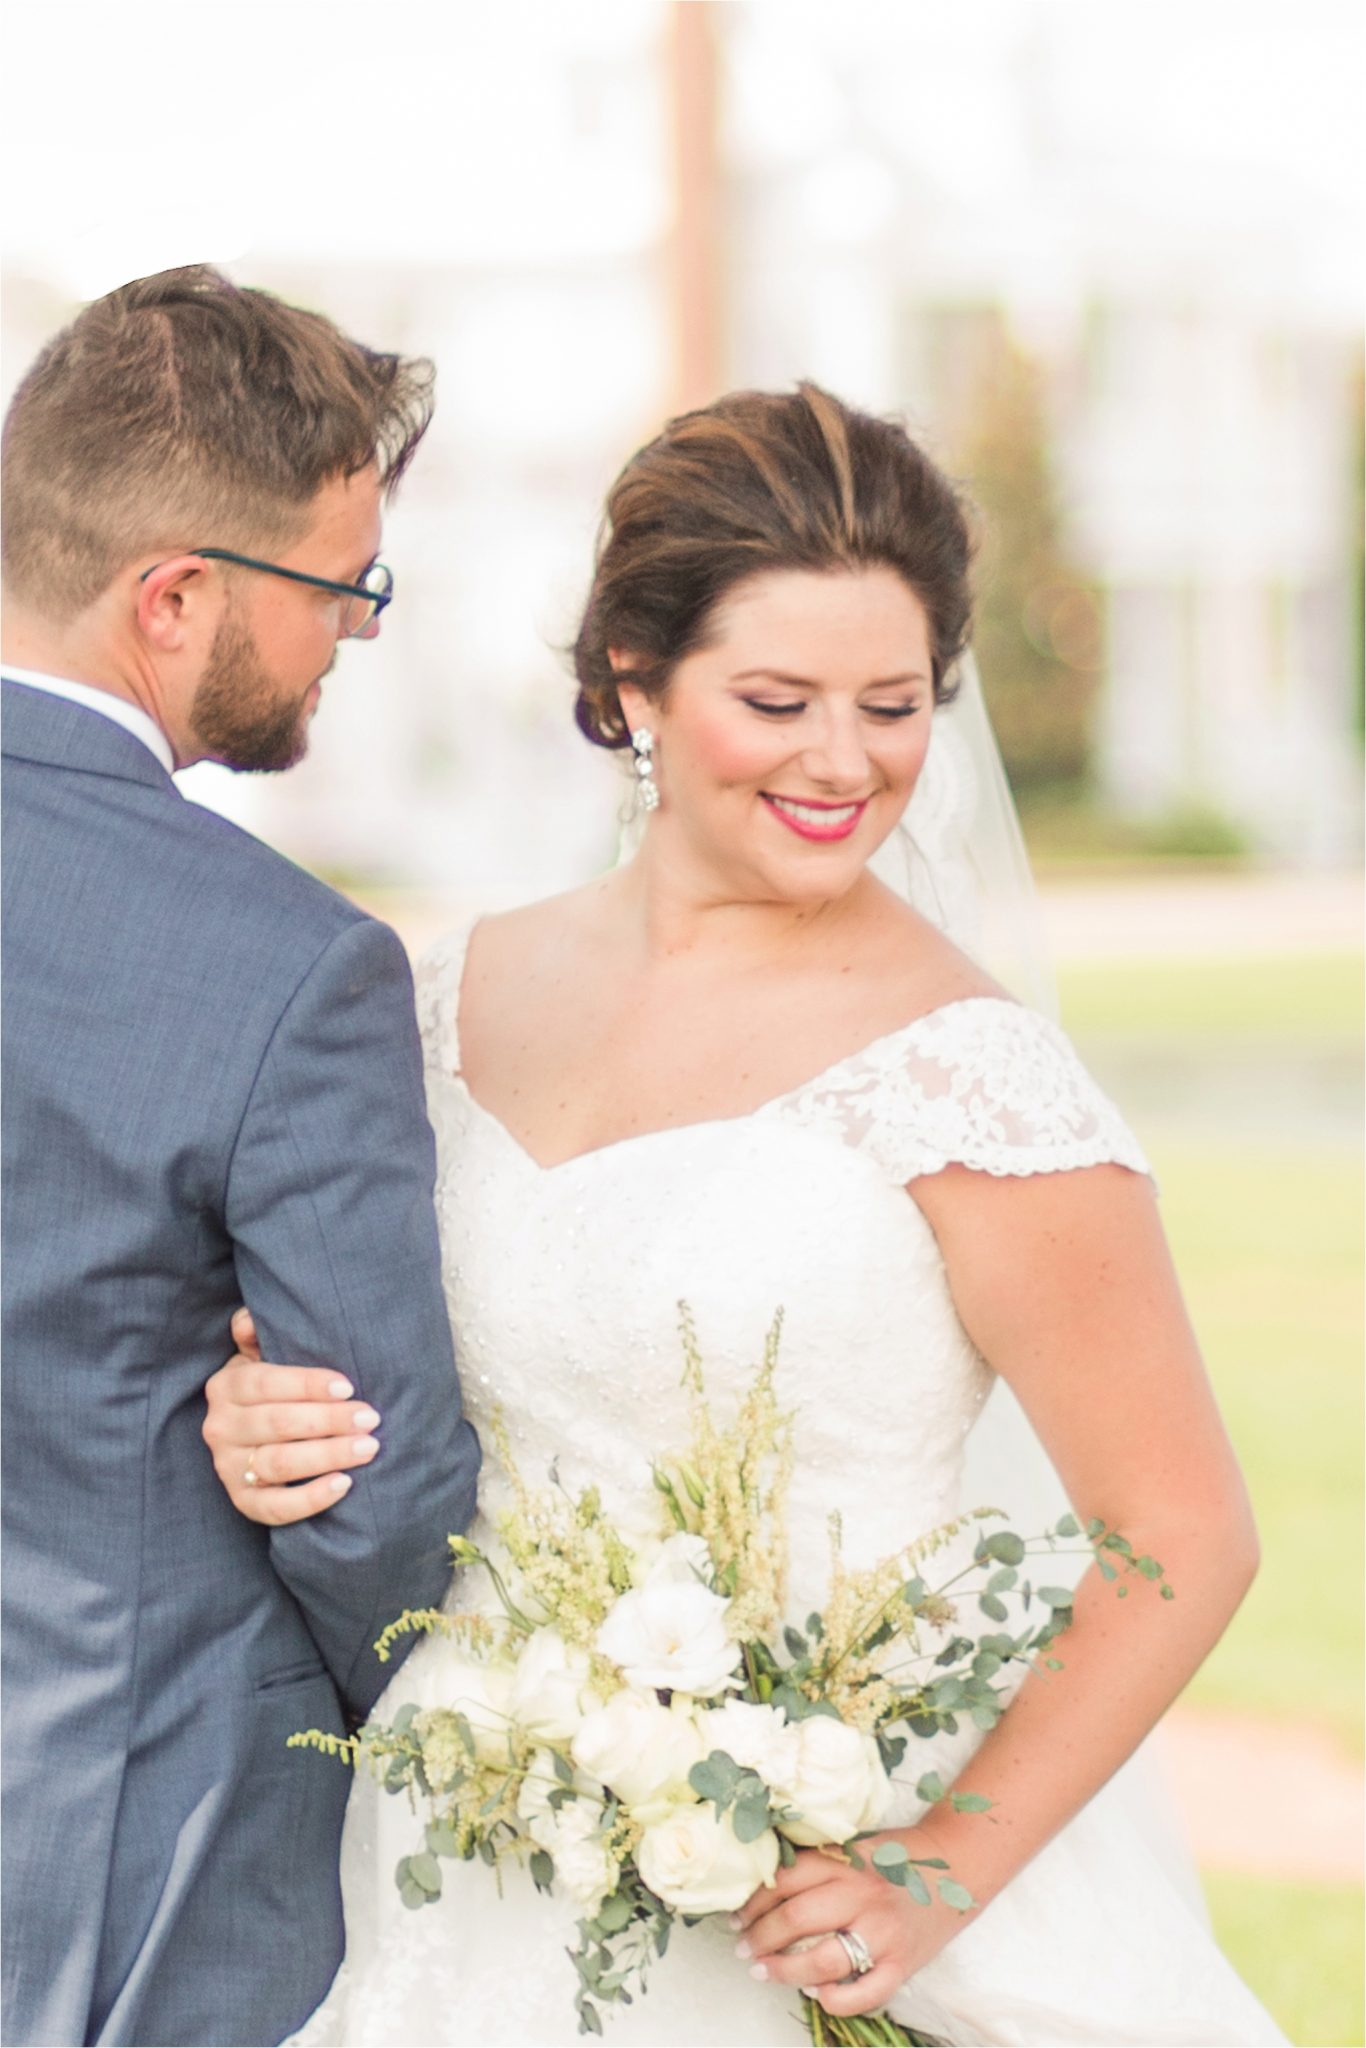 Pastel Themed Wedding-The Chapel at the Waters-Montgomery Alabama Photographer-Miles & Meredyth-Blue Themed Wedding-Navy Blue Groom Attire-Wedding Dress-Bride Bouquet